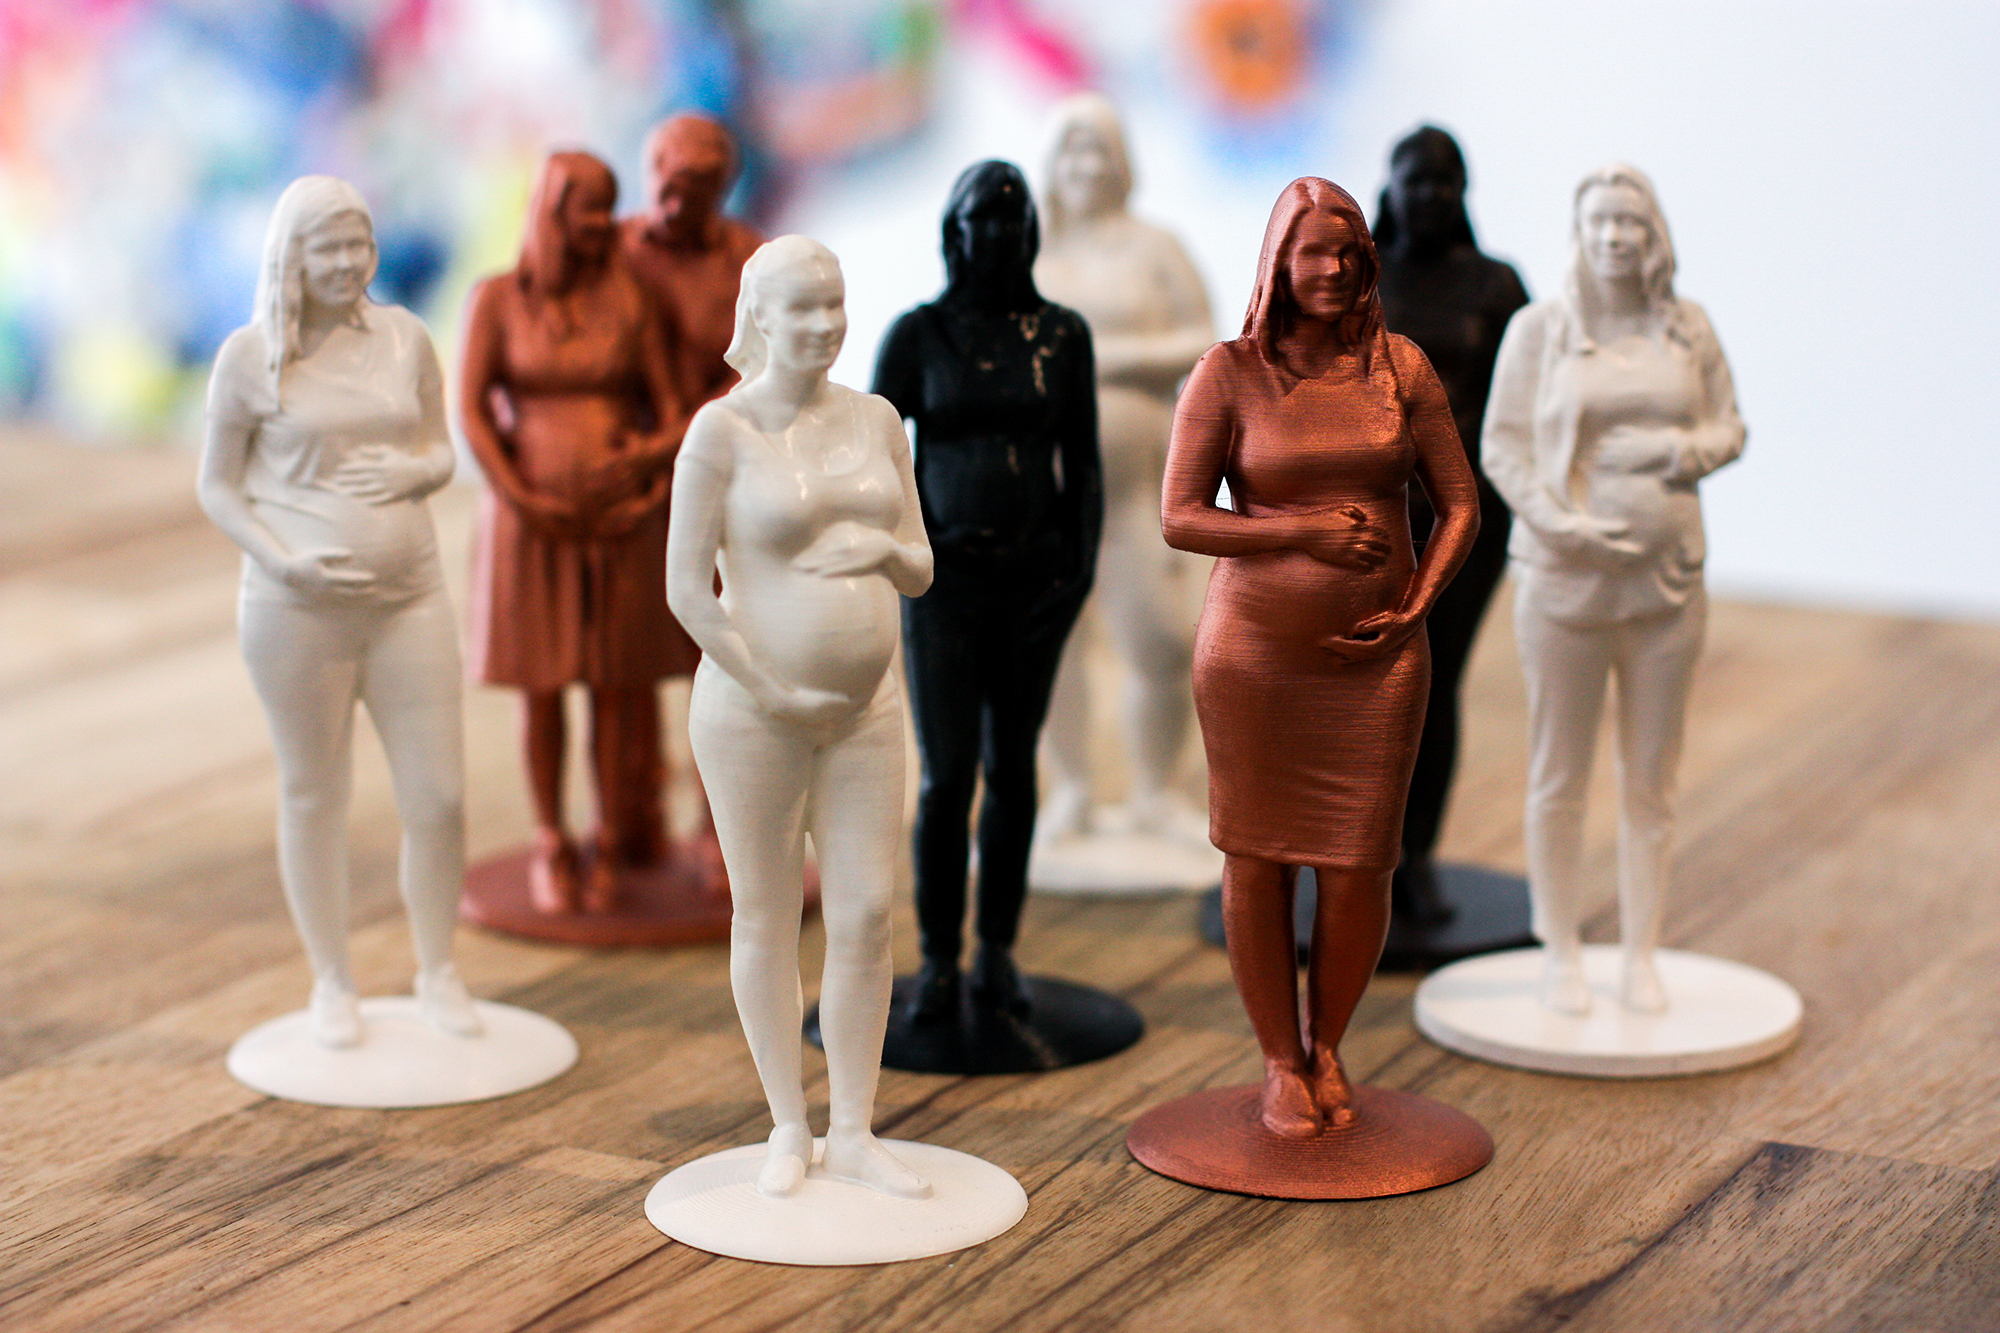 mini me 3D printed figurine for pregnant women